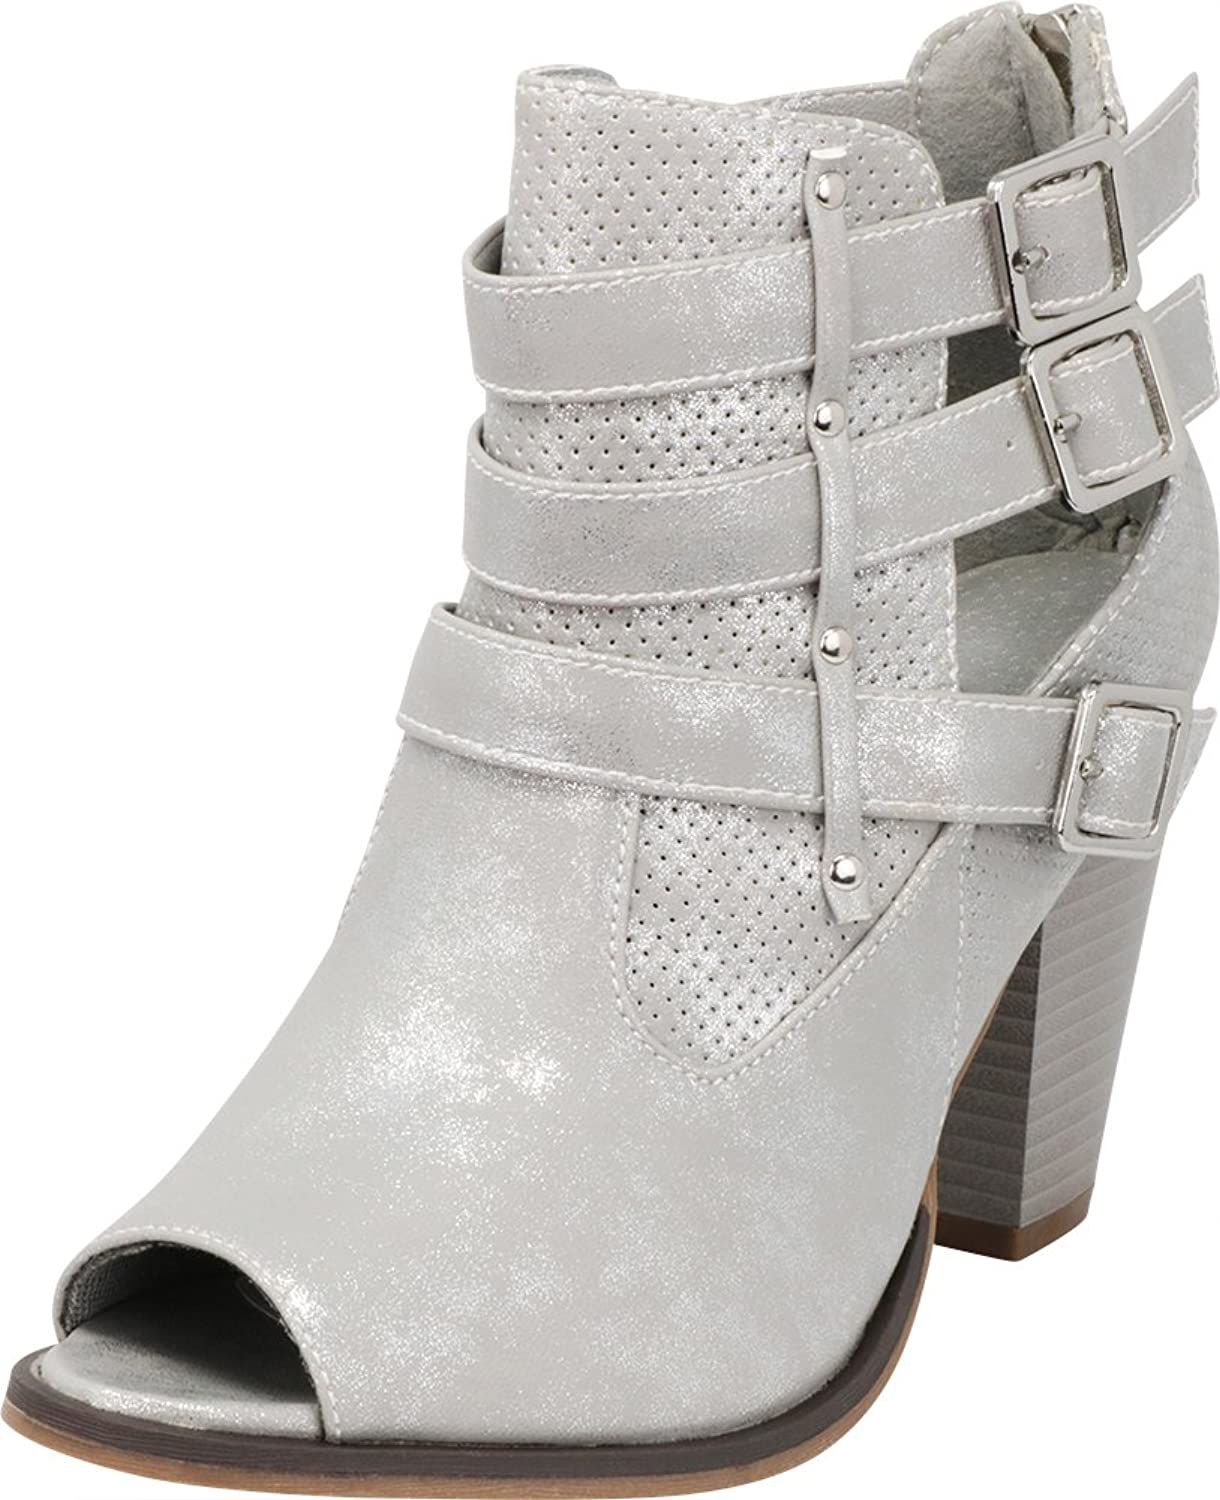 Cambridge Select Women's Peep Toe Perforated Cutout Strappy Buckled Chunky Stacked Heel Ankle Bootie